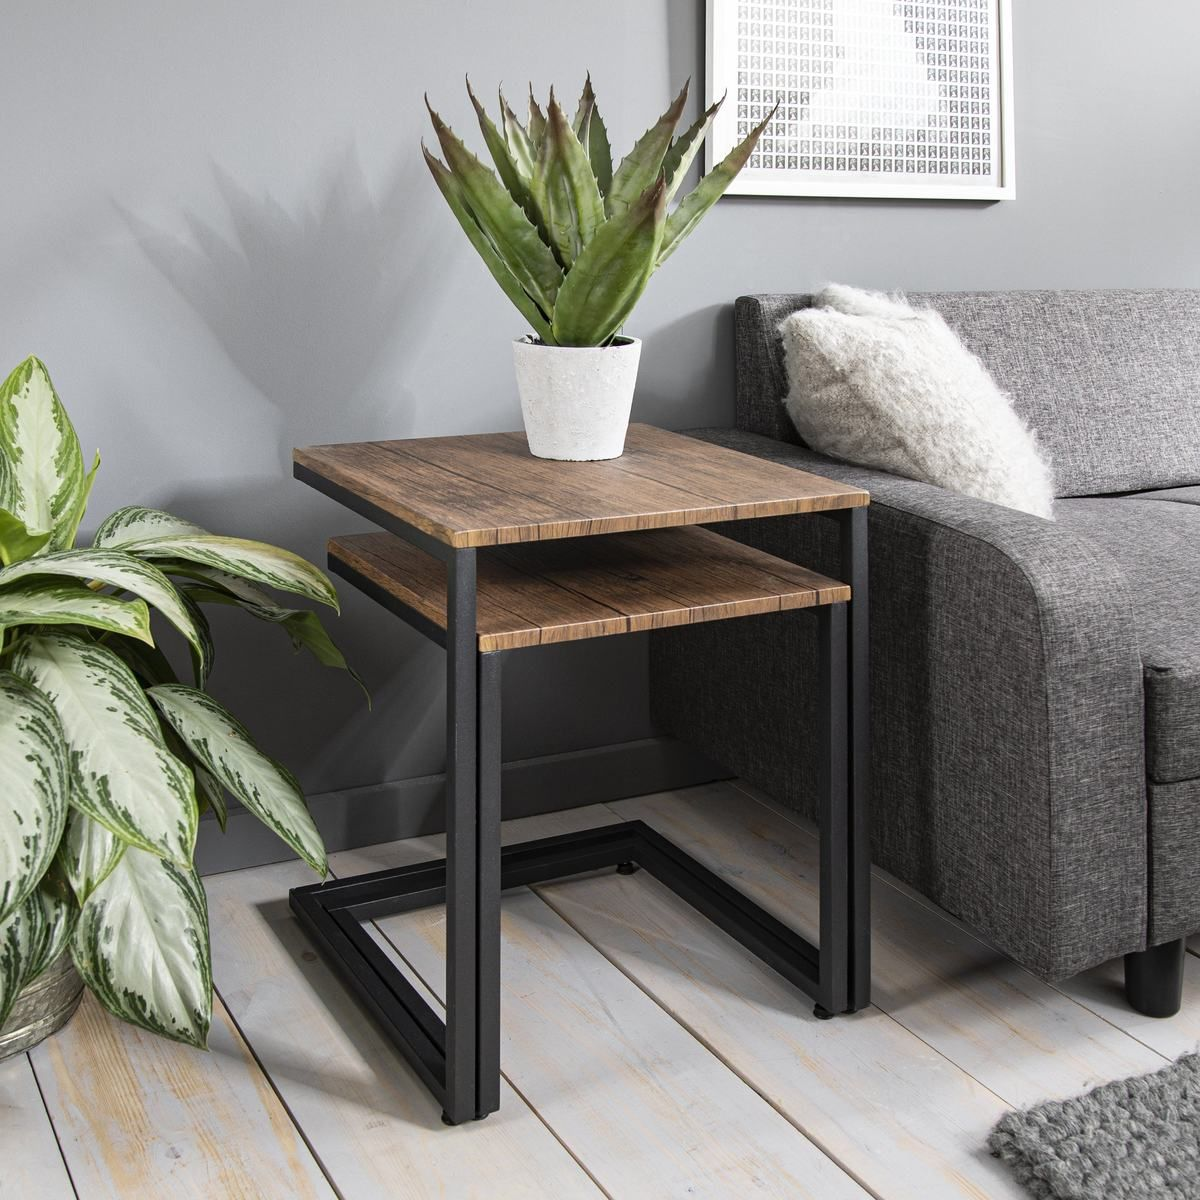 Industrial Nest Of Tables Wood Effect Metal Living Room Table Living Room Coffee Table Living Table